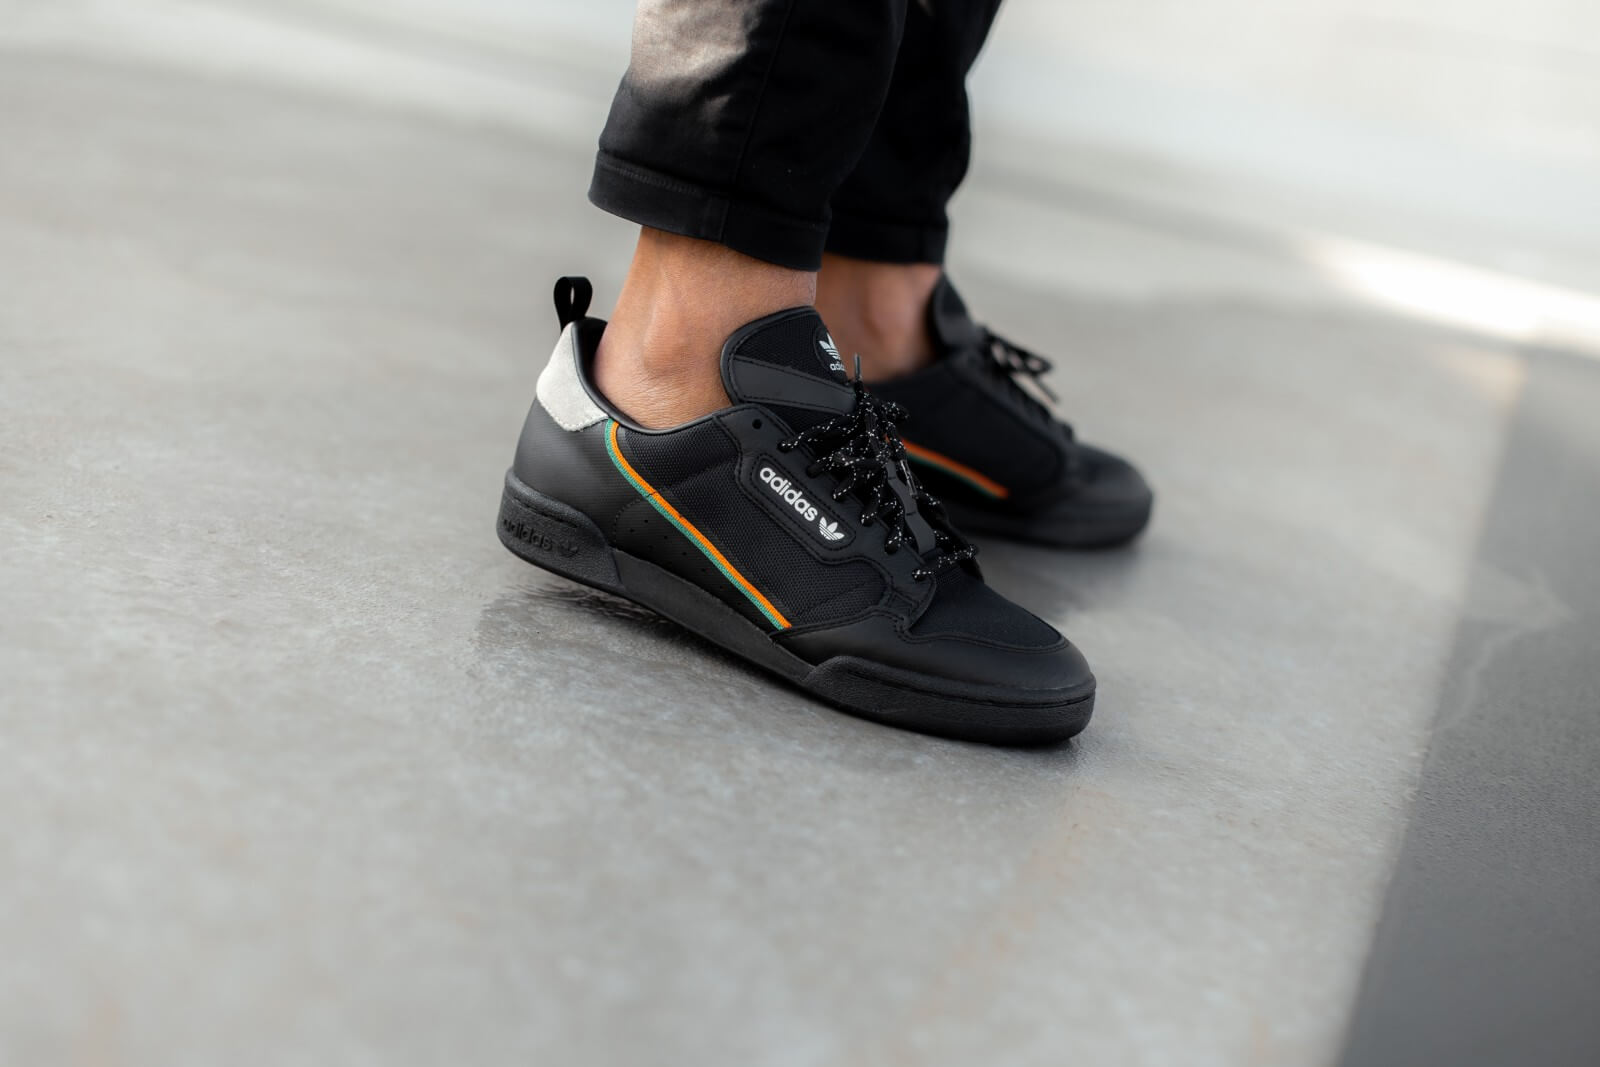 Adidas Continental 80 Core Black/Orange-Green - EE5597